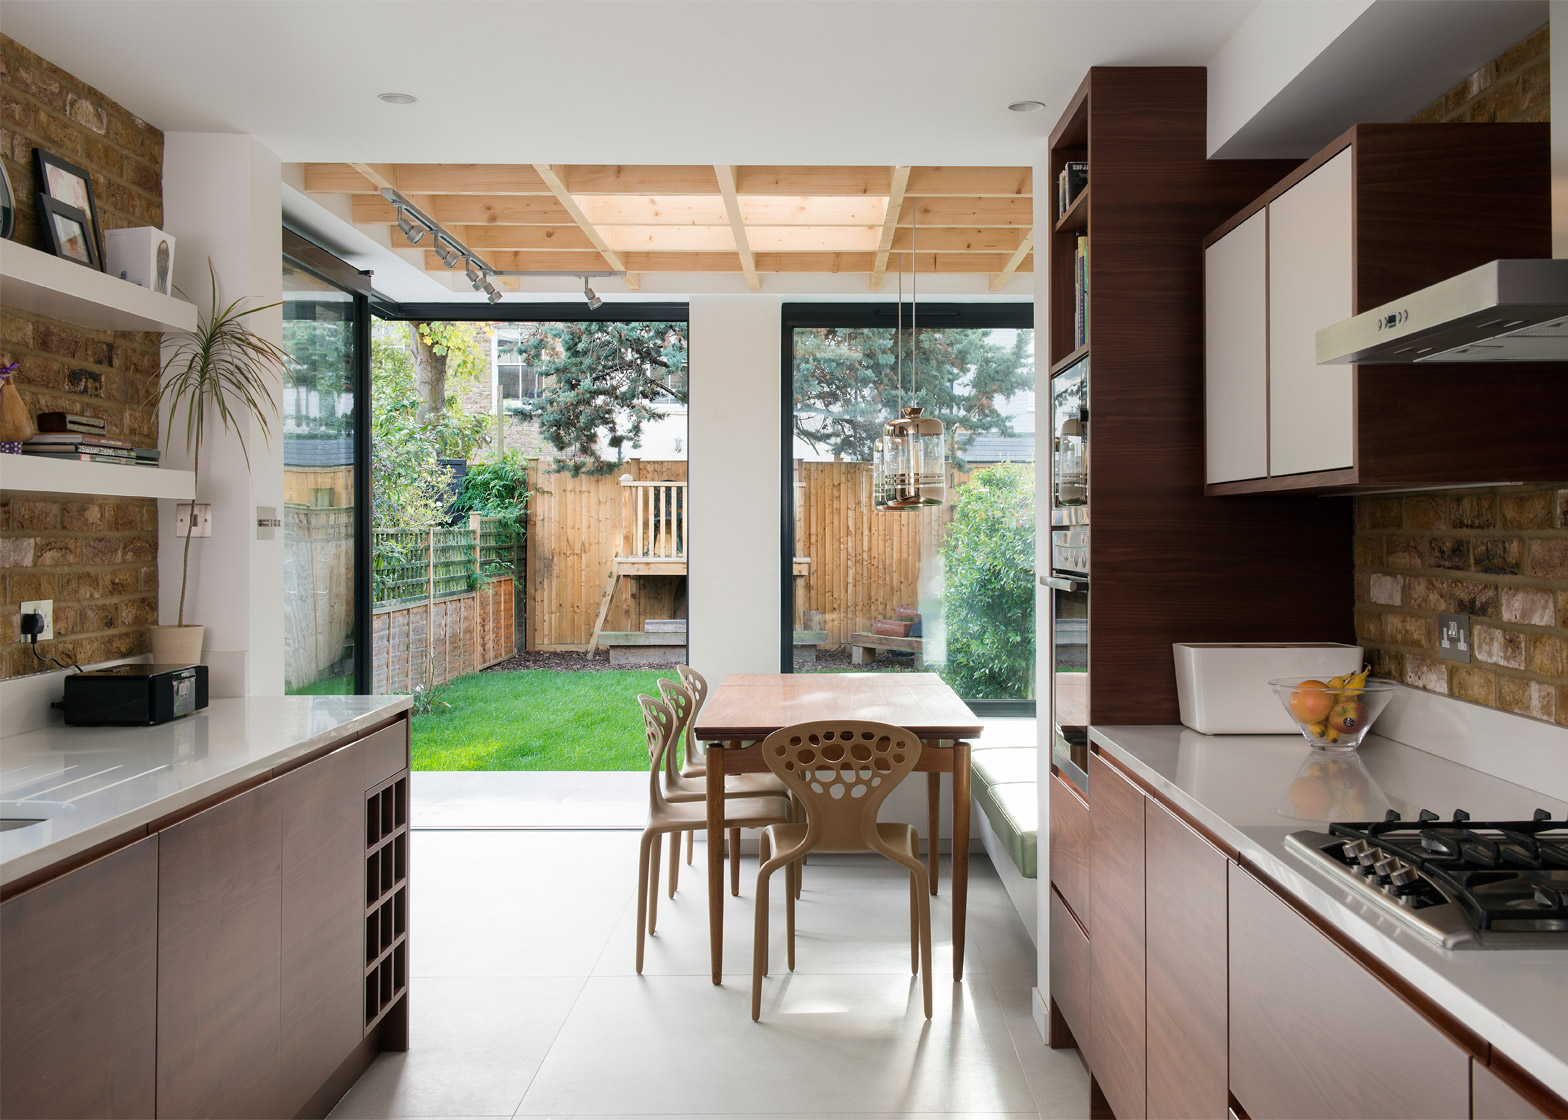 Craig and Siobhan's Place by Alexander Owen Architecture